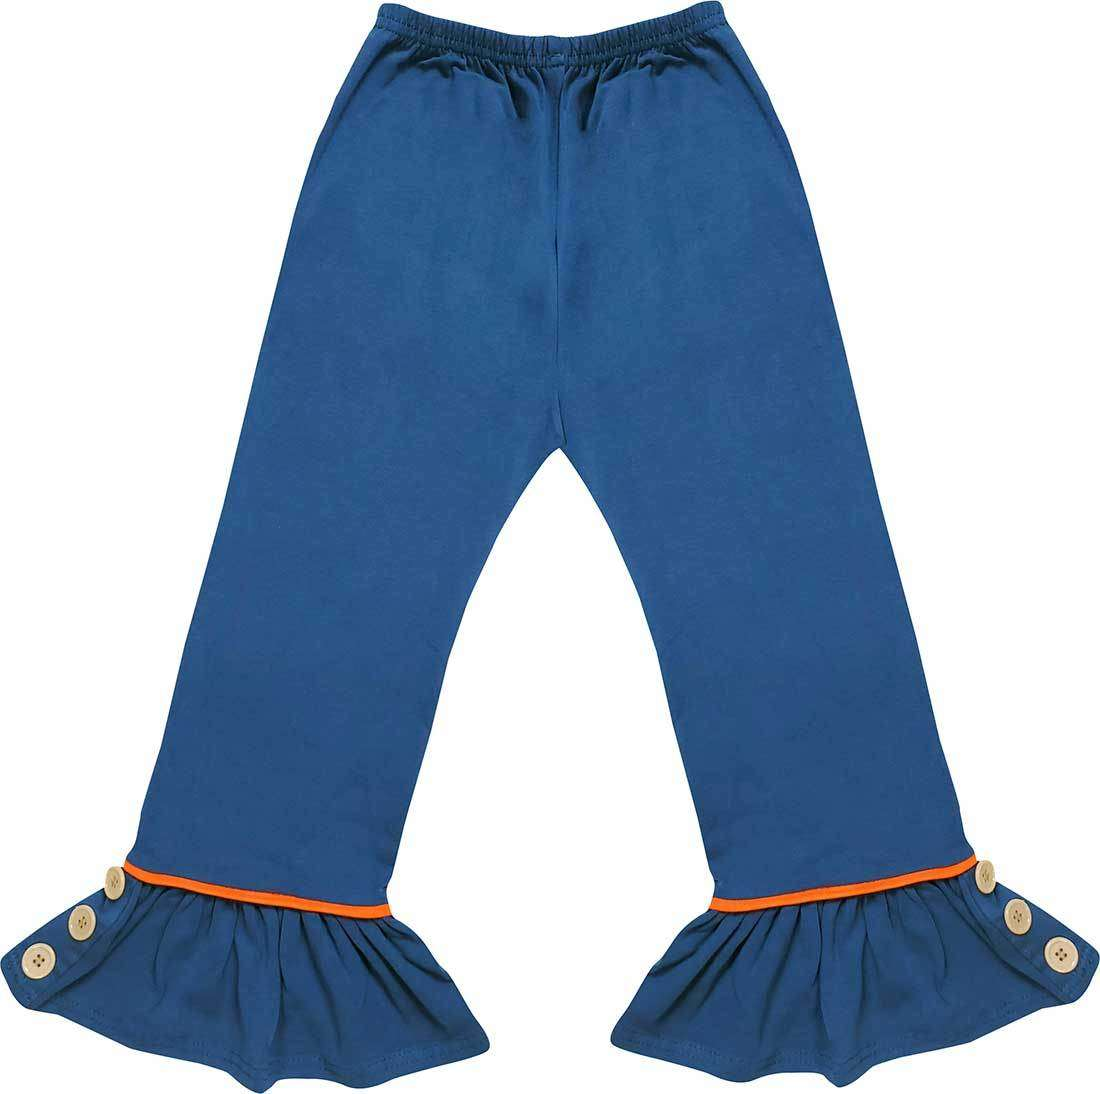 Angeline Kids:Baby Toddler Little Girls Ruffles Pants - Teal